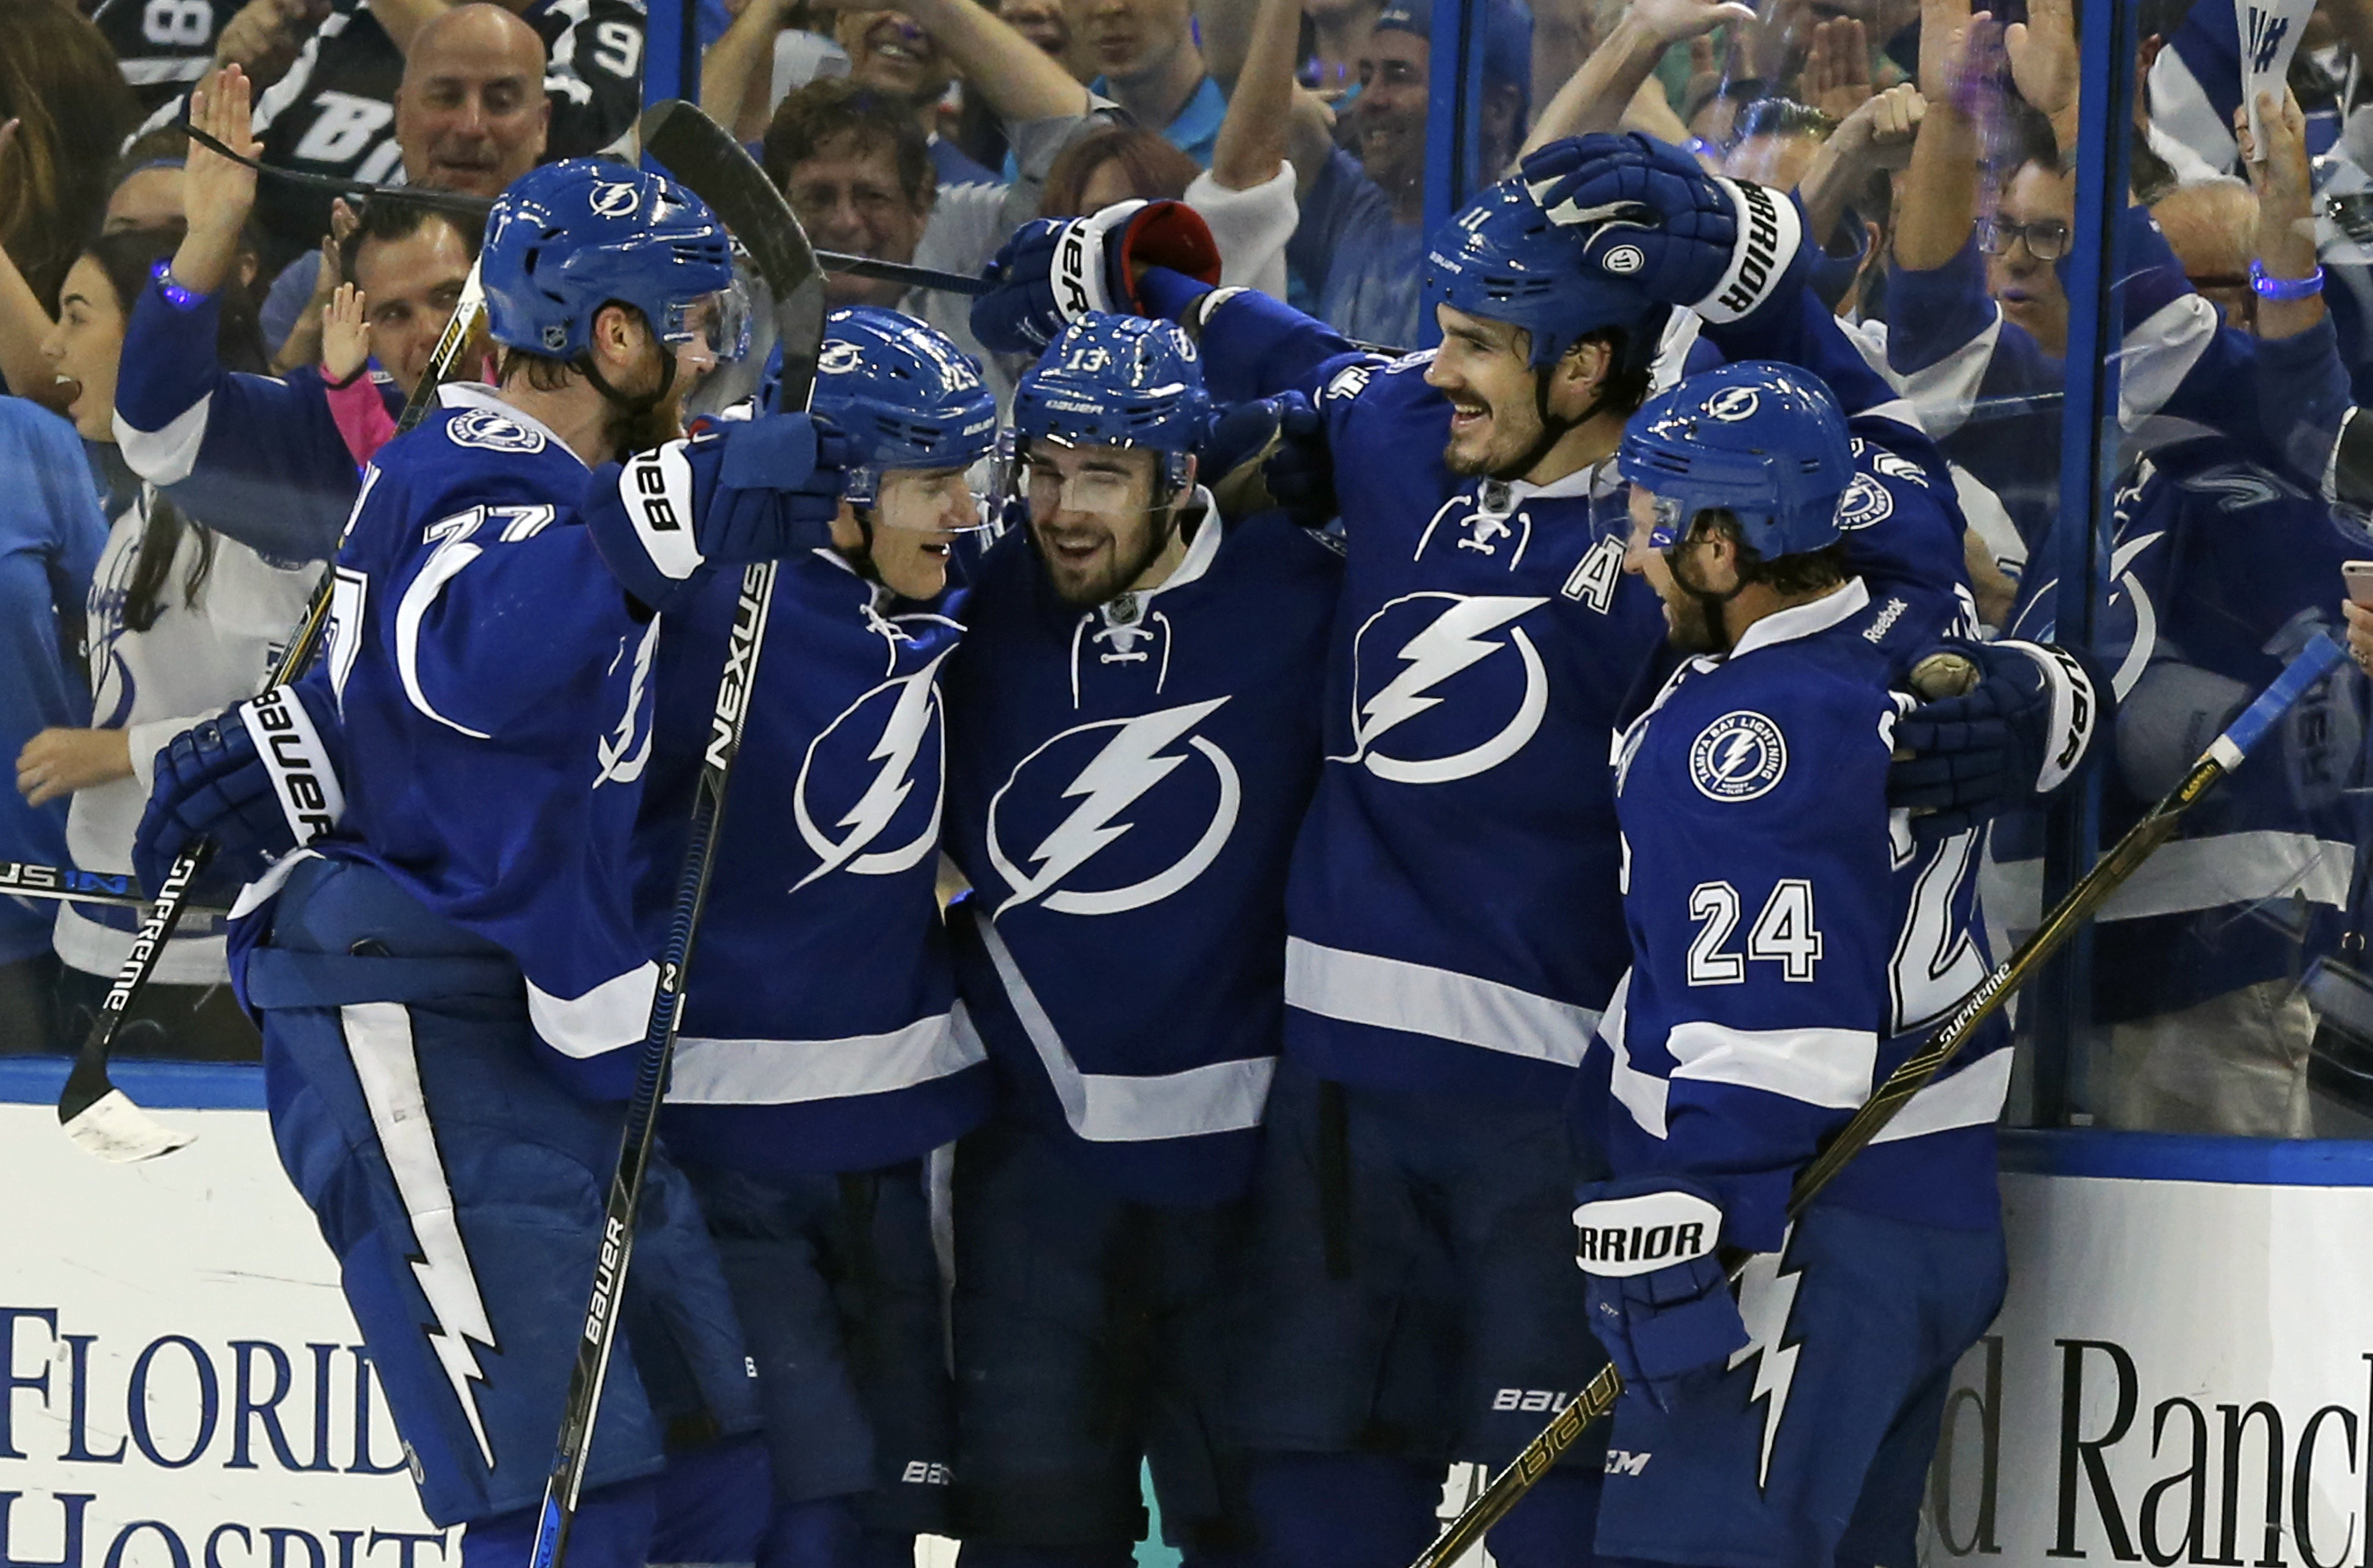 Victor Hedman (77), Matt Carle (25), Cedric Paquette (13) and Ryan Callahan (24) celebrate a goal by Brian Boyle (11) during Tampa Bay's series-clinching win. (Getty Images)